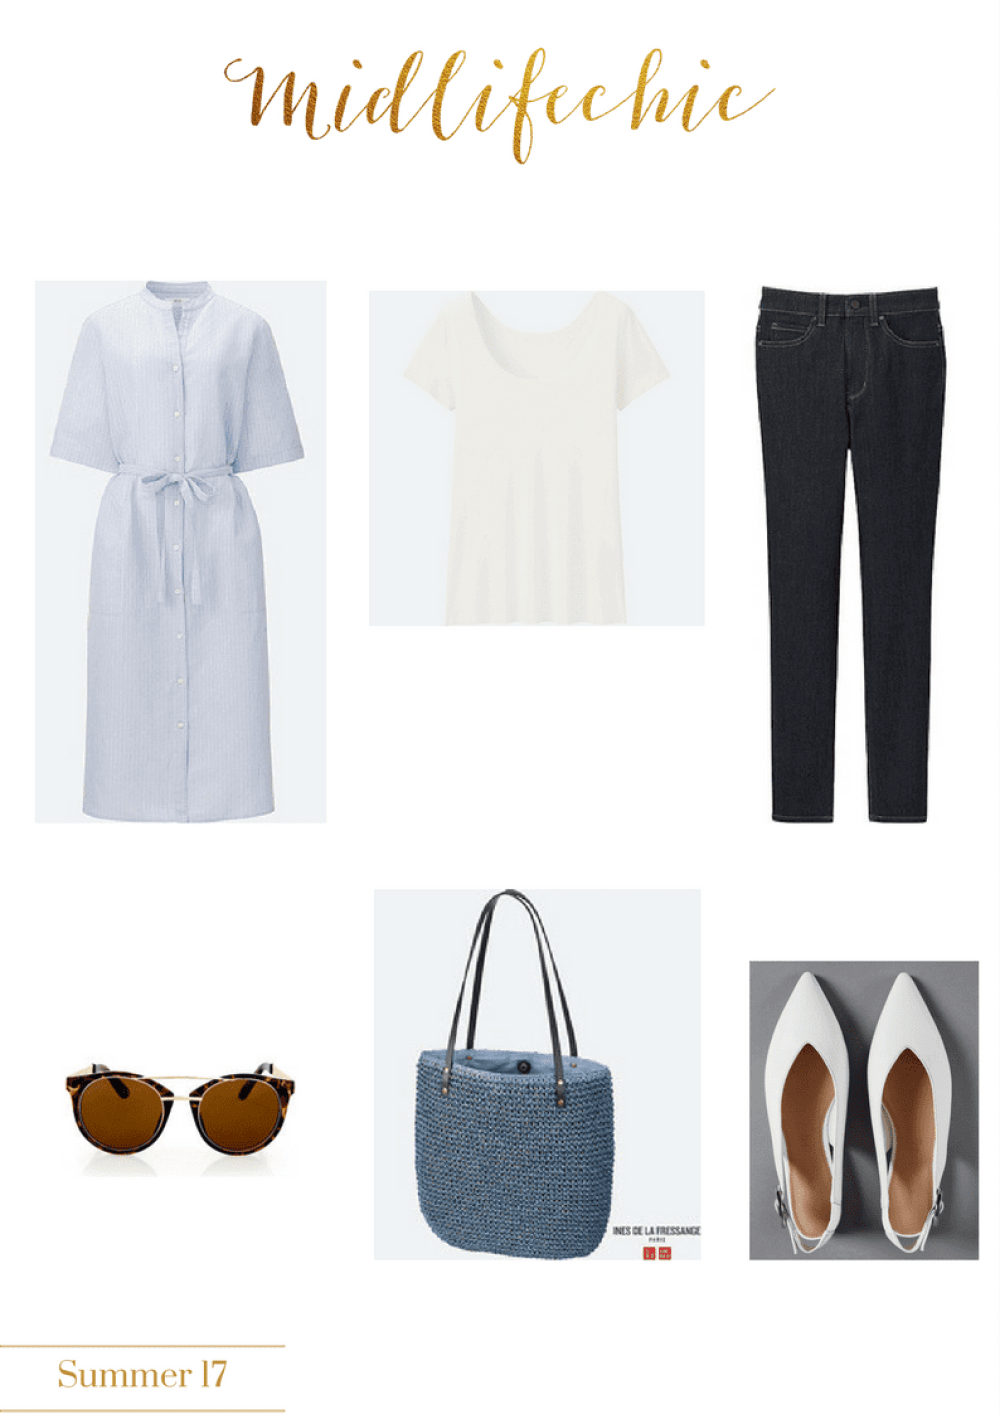 linen and denim at Uniqlo